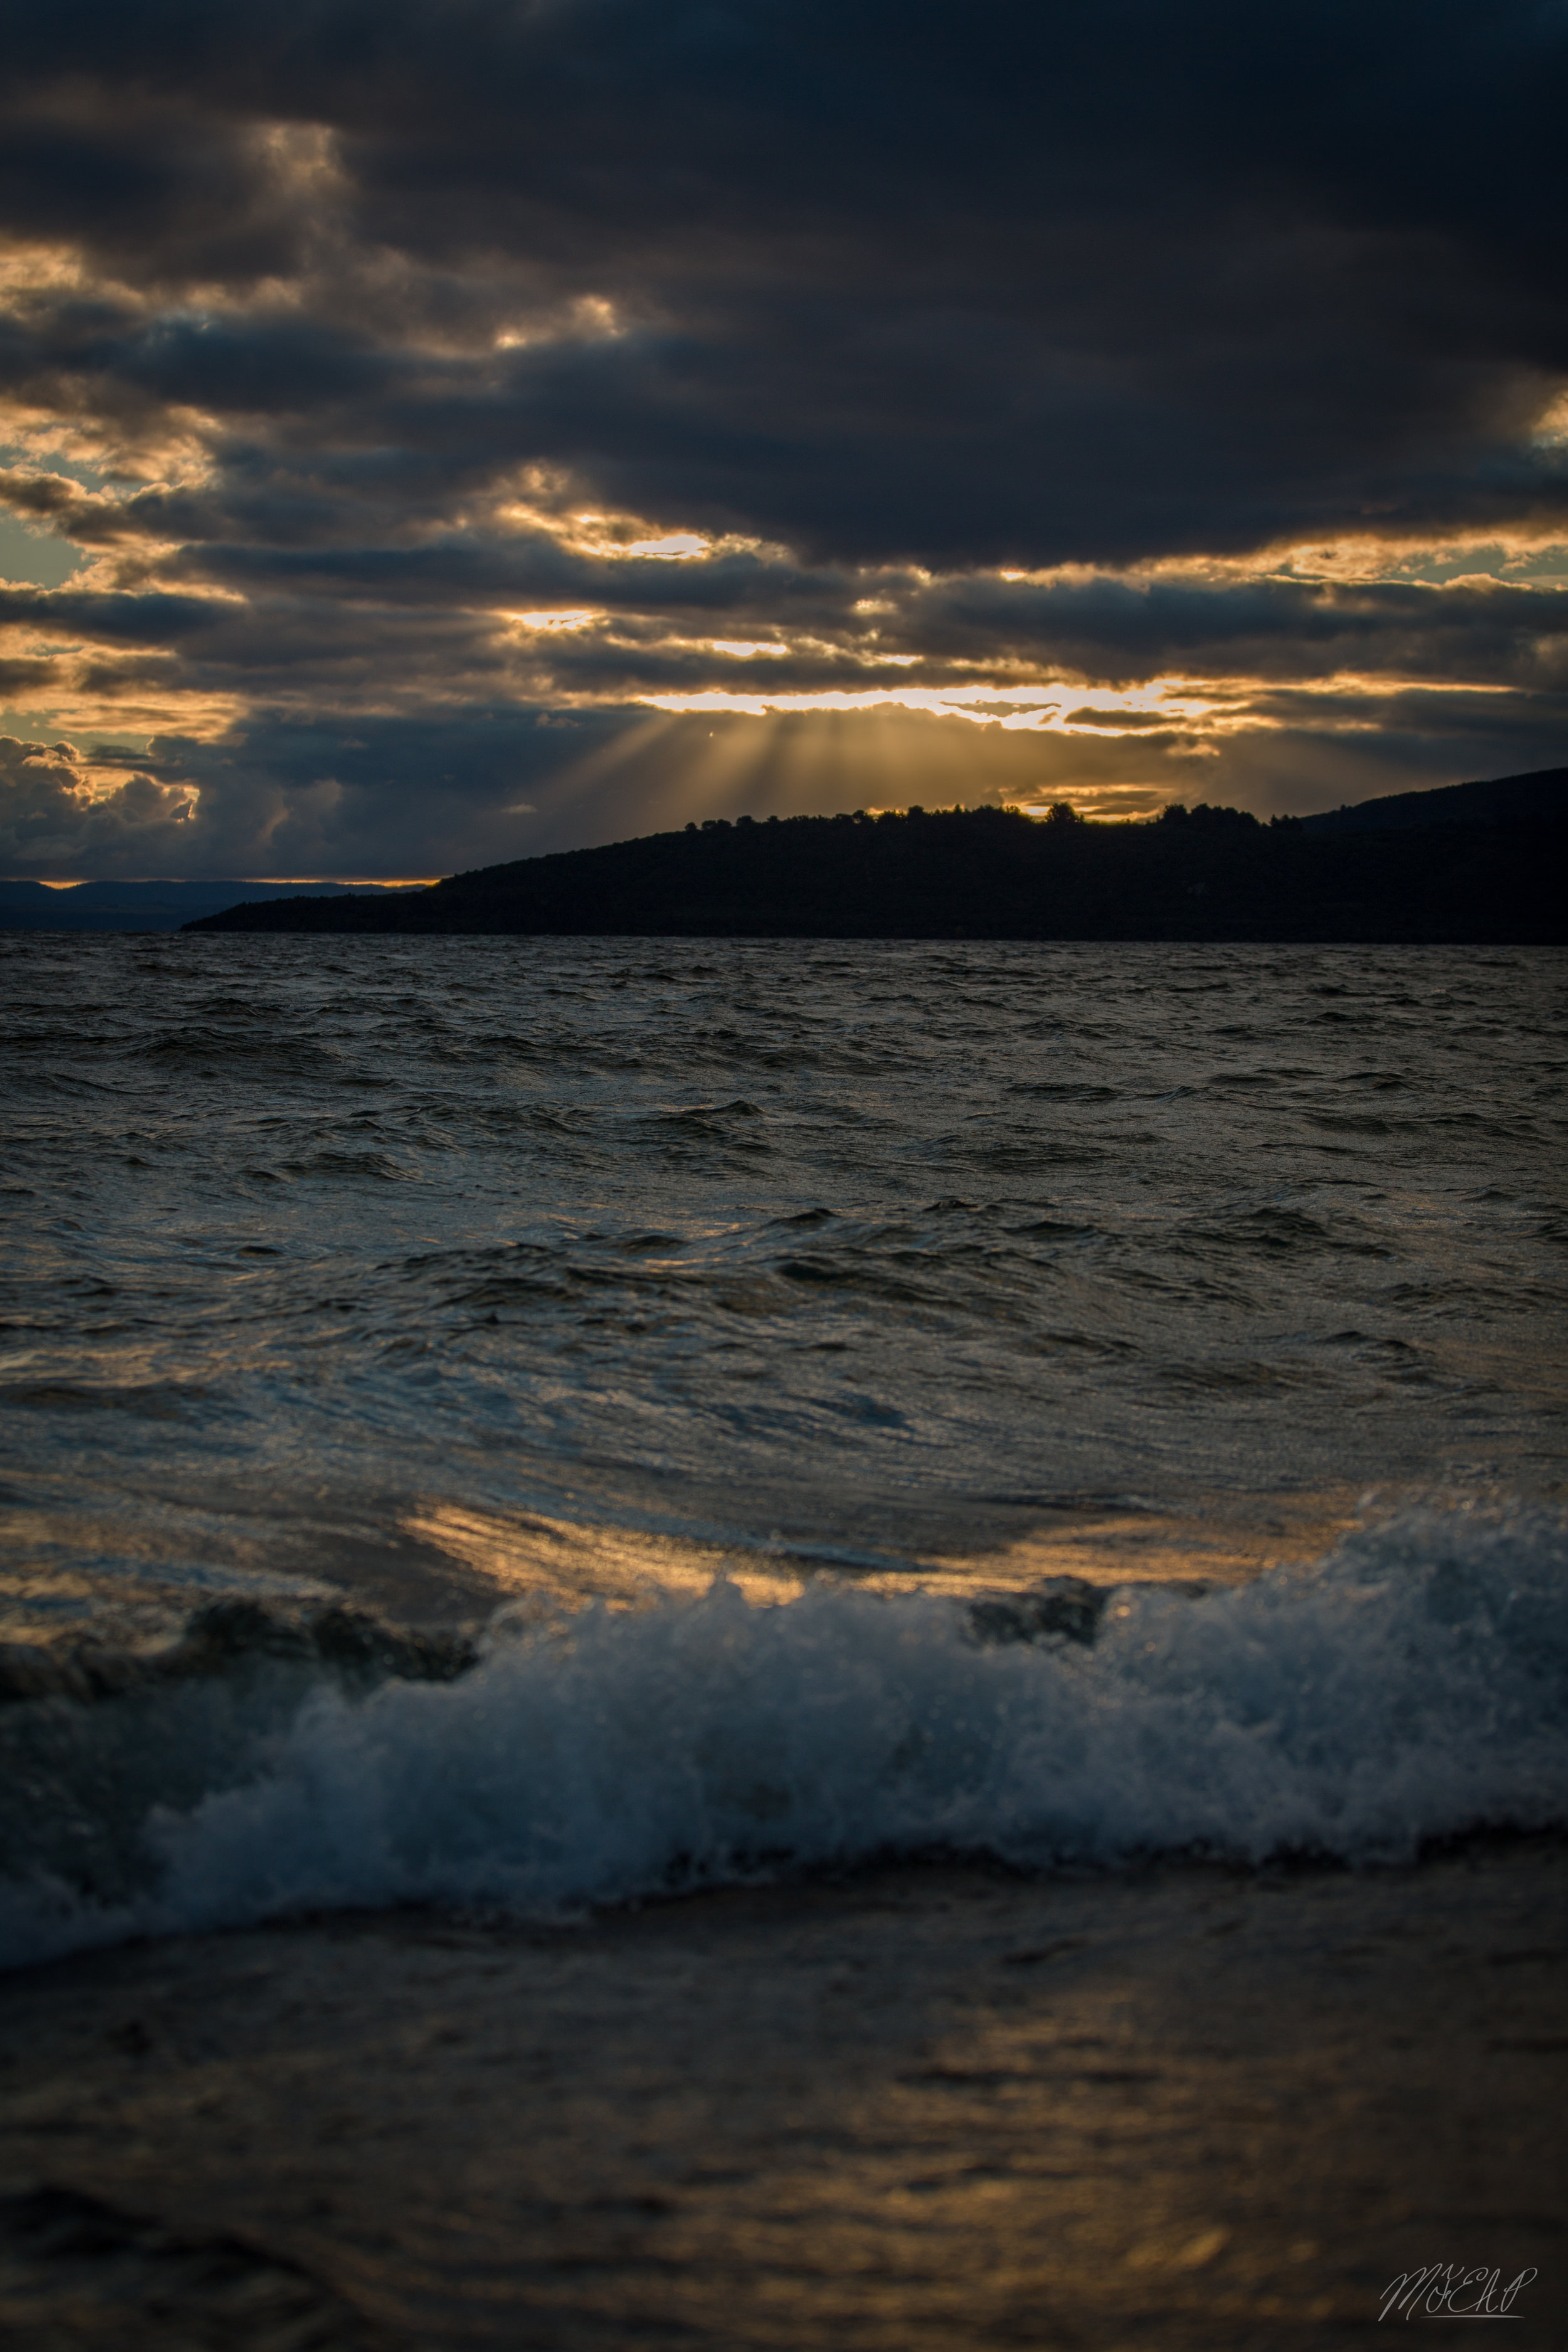 On the shores of lake Taupo